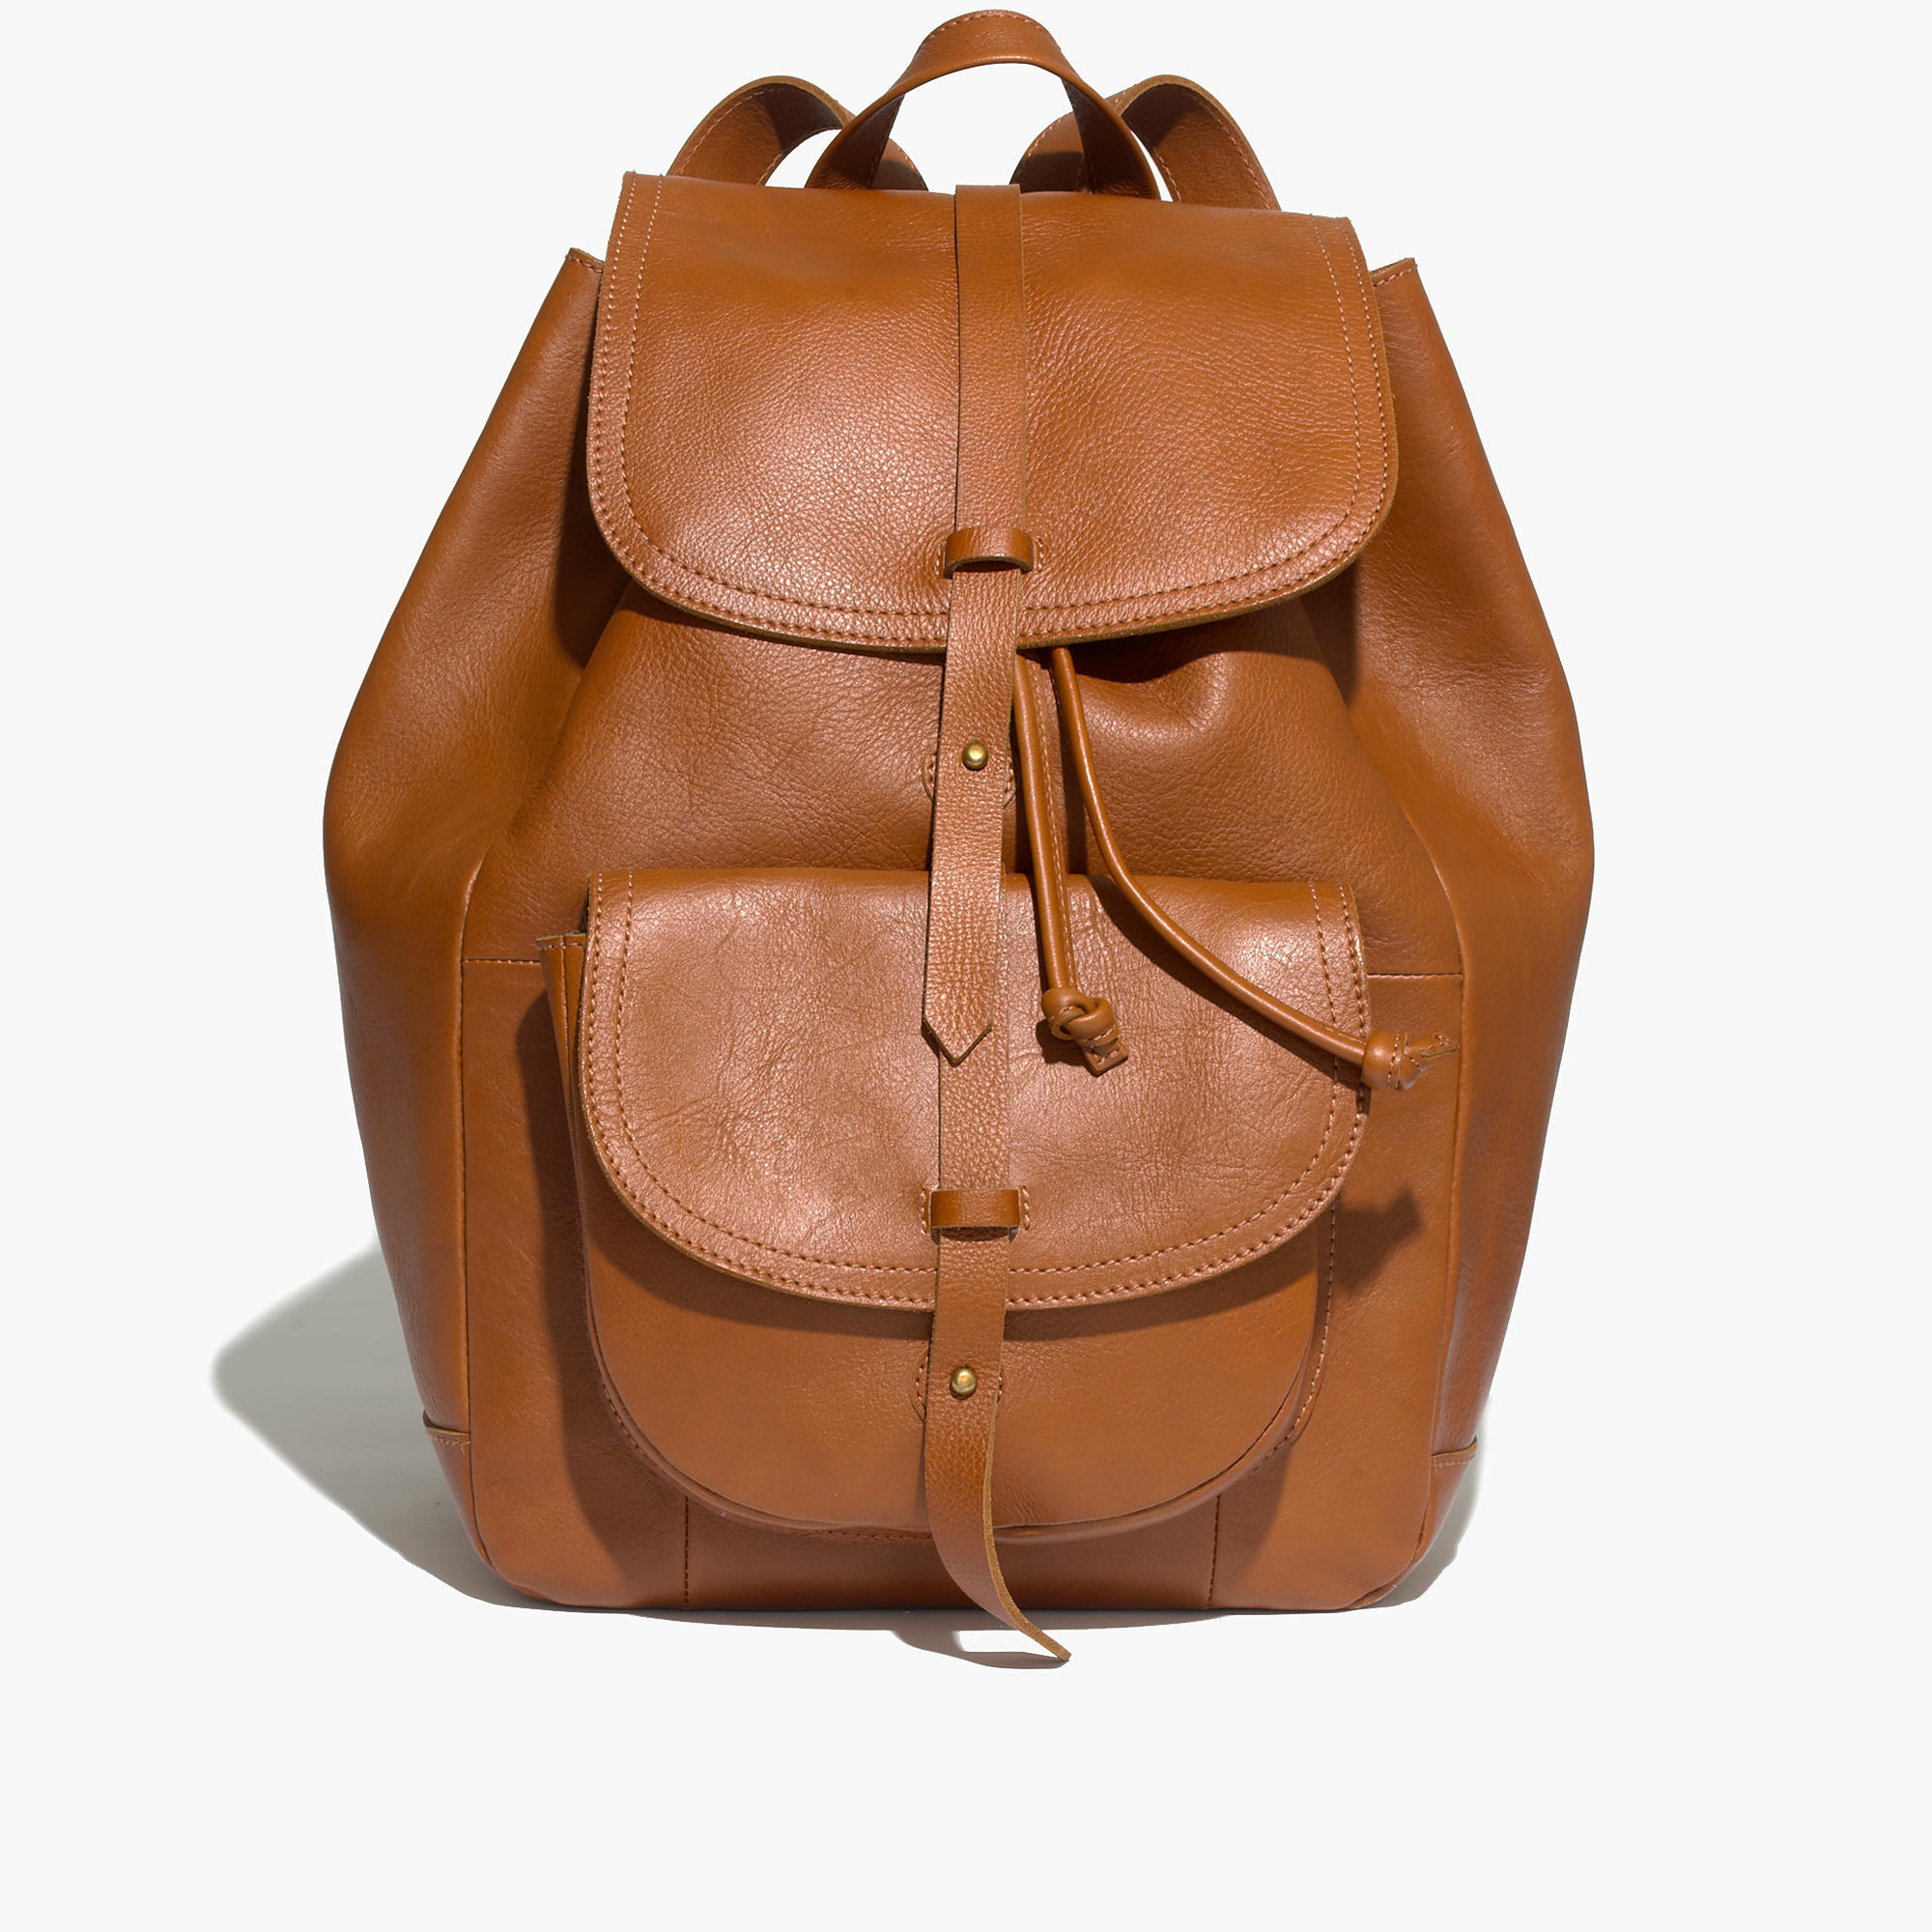 16 Backpacks For Sophisticated 4c3c5e8f4710f